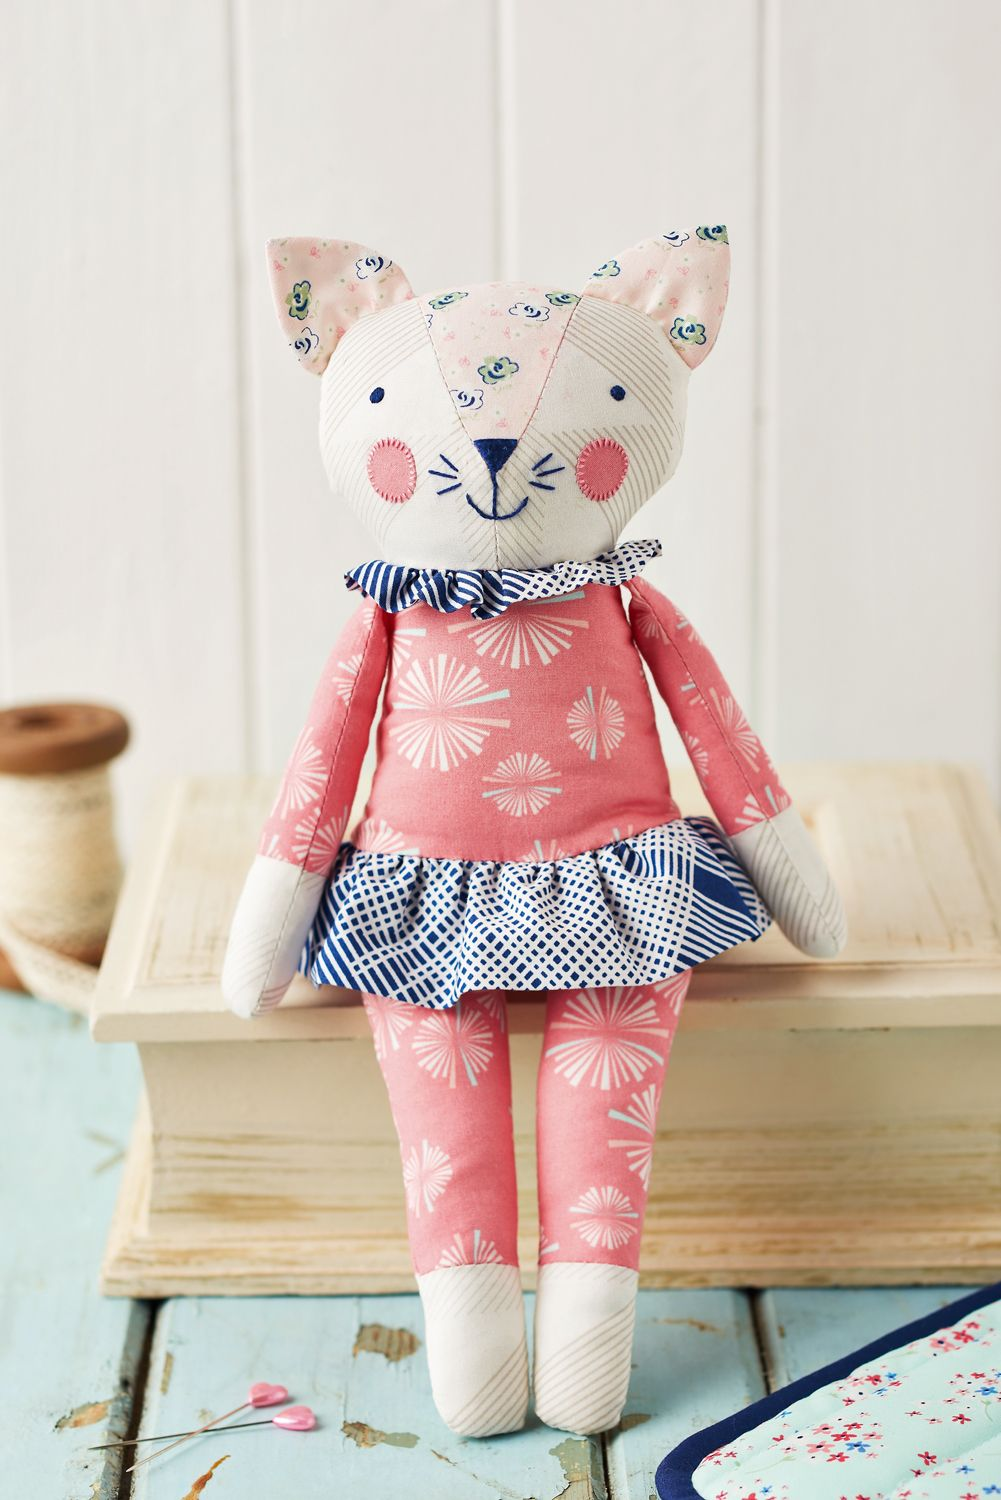 27+ Adorable Sewing Patterns for Stuffies, Plushies, Stuffed Animals and Other Handmade Felt and Fabric Toys #toydoll